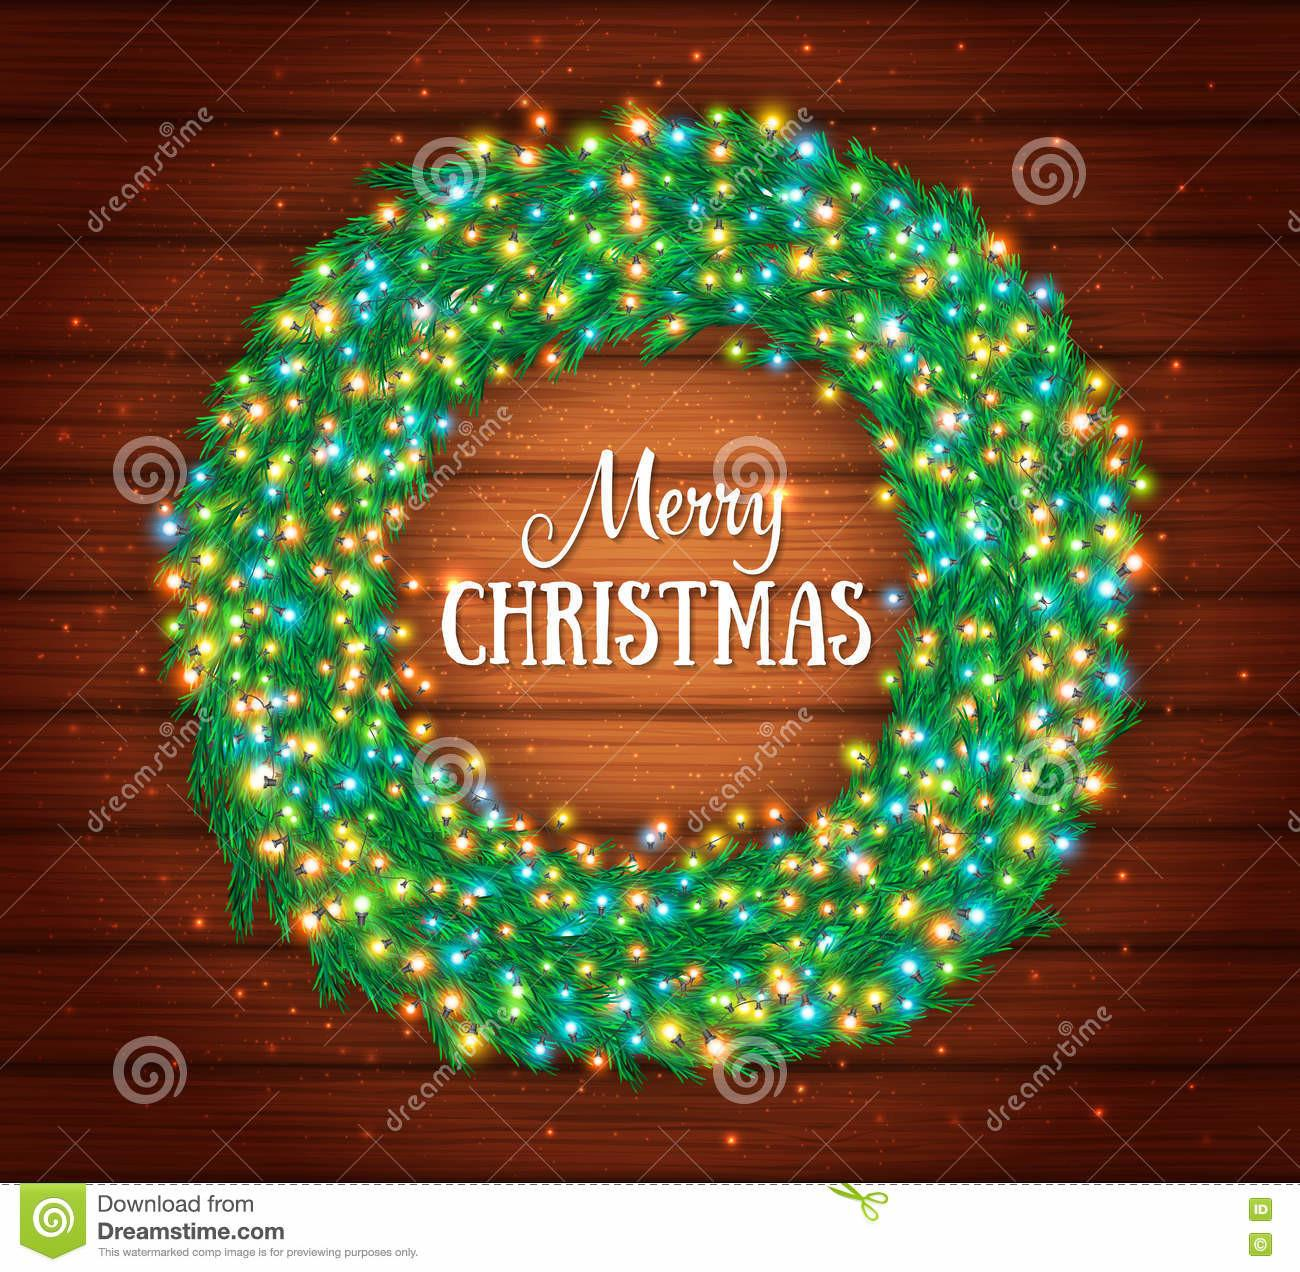 Christmas Wreath Colourful Glowing Garland Lights Wood